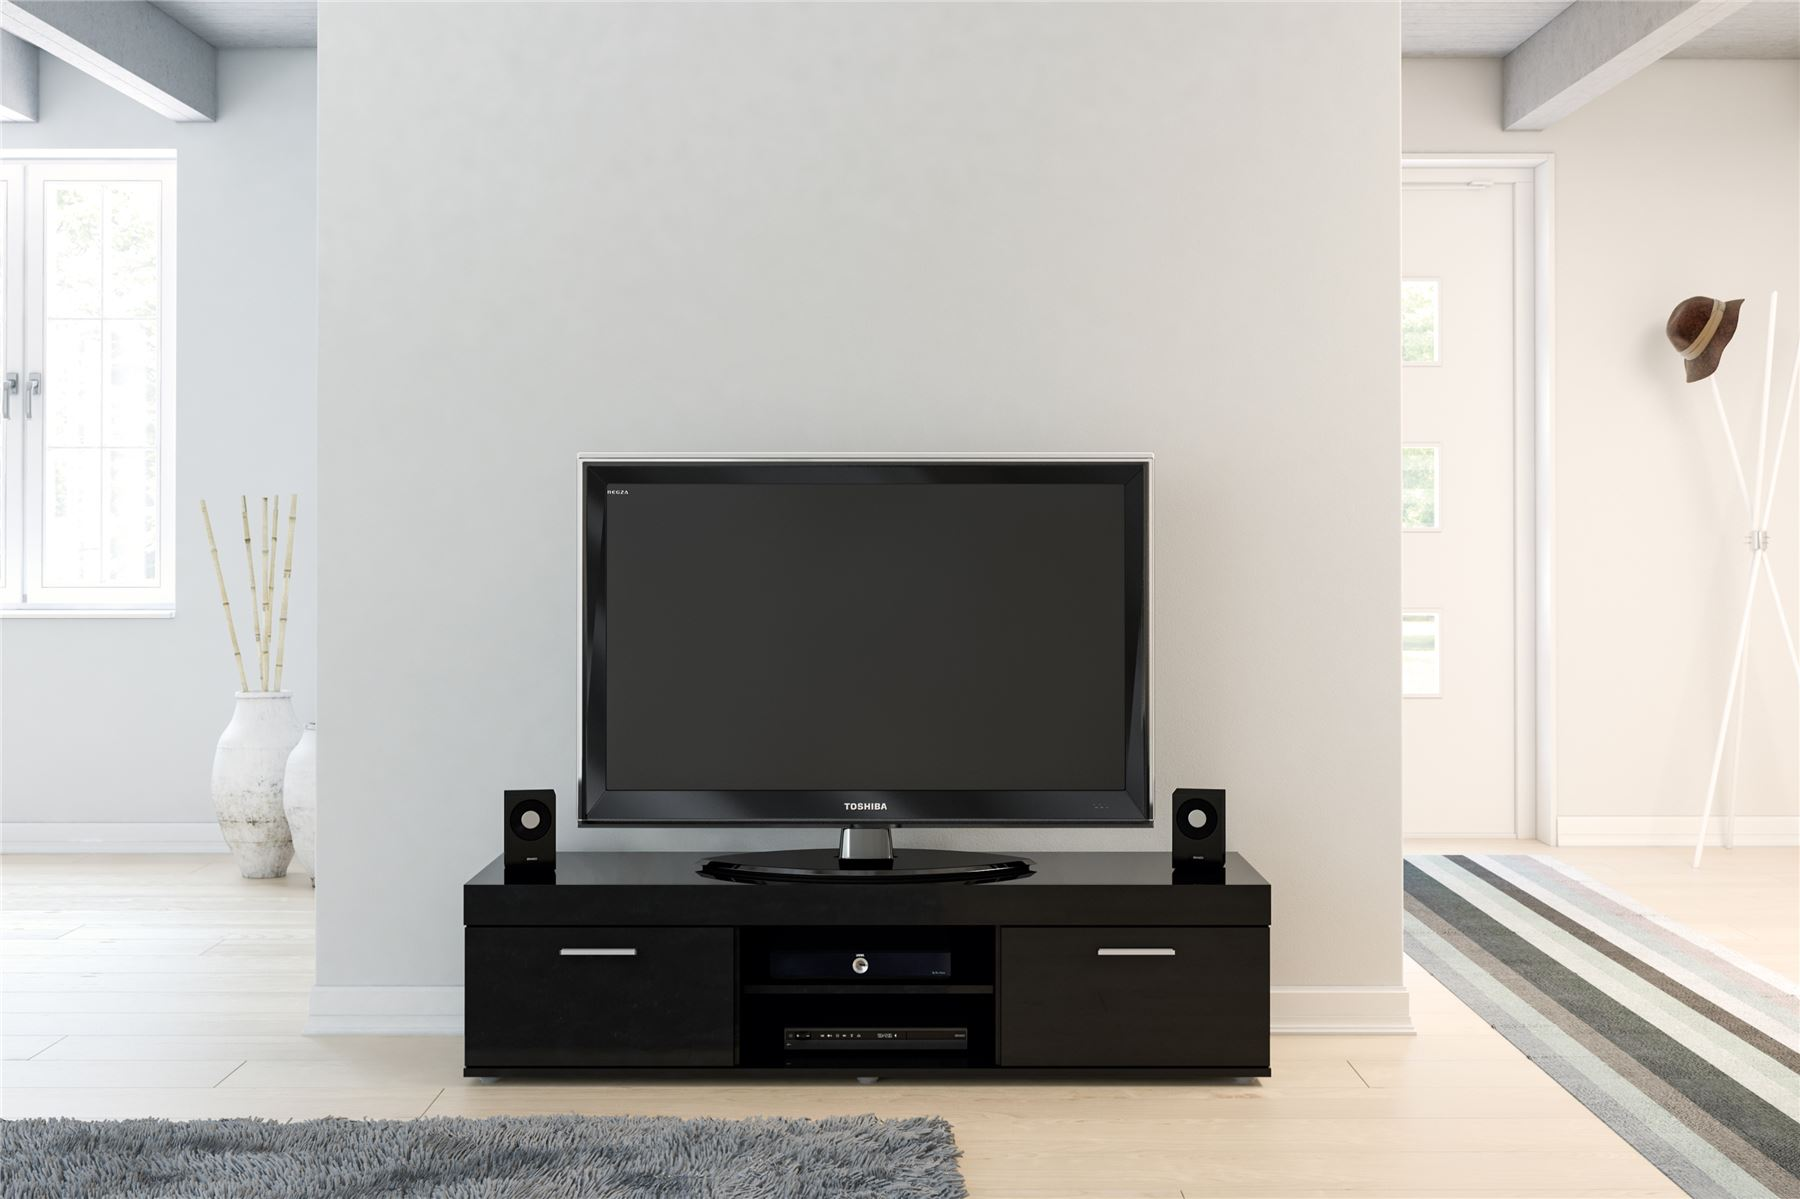 Black Gloss Living Room Cupboard TV Entertainment Unit Stand Cabinet